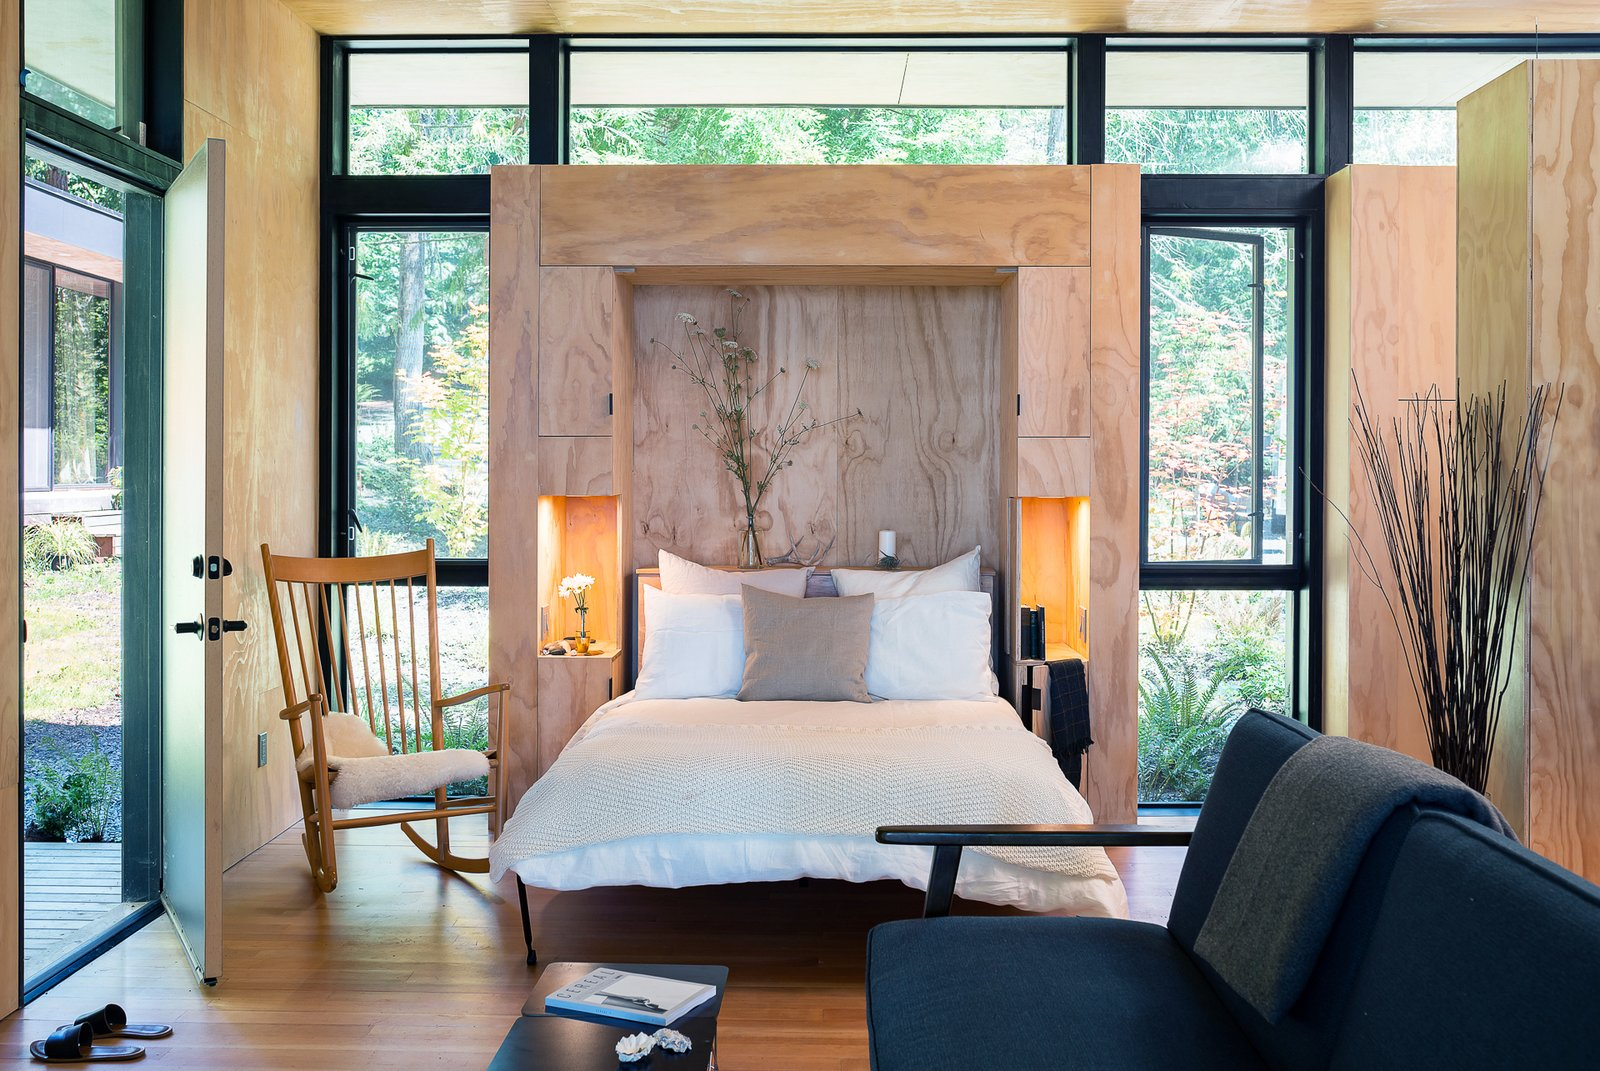 Bedroom Hood Cliff Retreat (Wittman Estes)  Hood Cliff Retreat by Wittman Estes